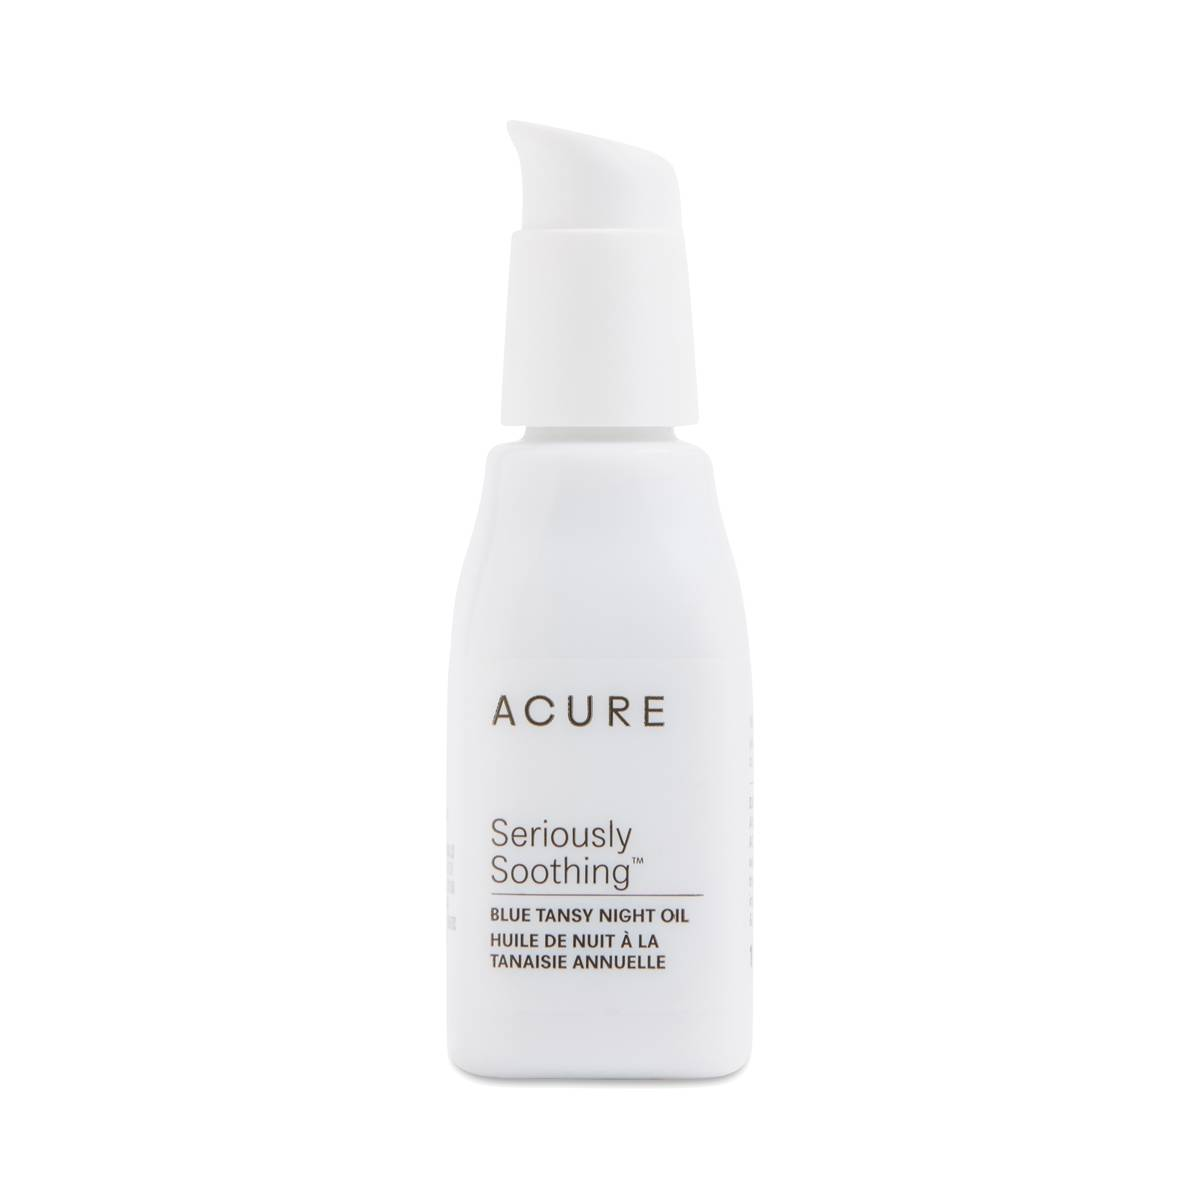 Soothing Blue Tansy Night Oil By Acure